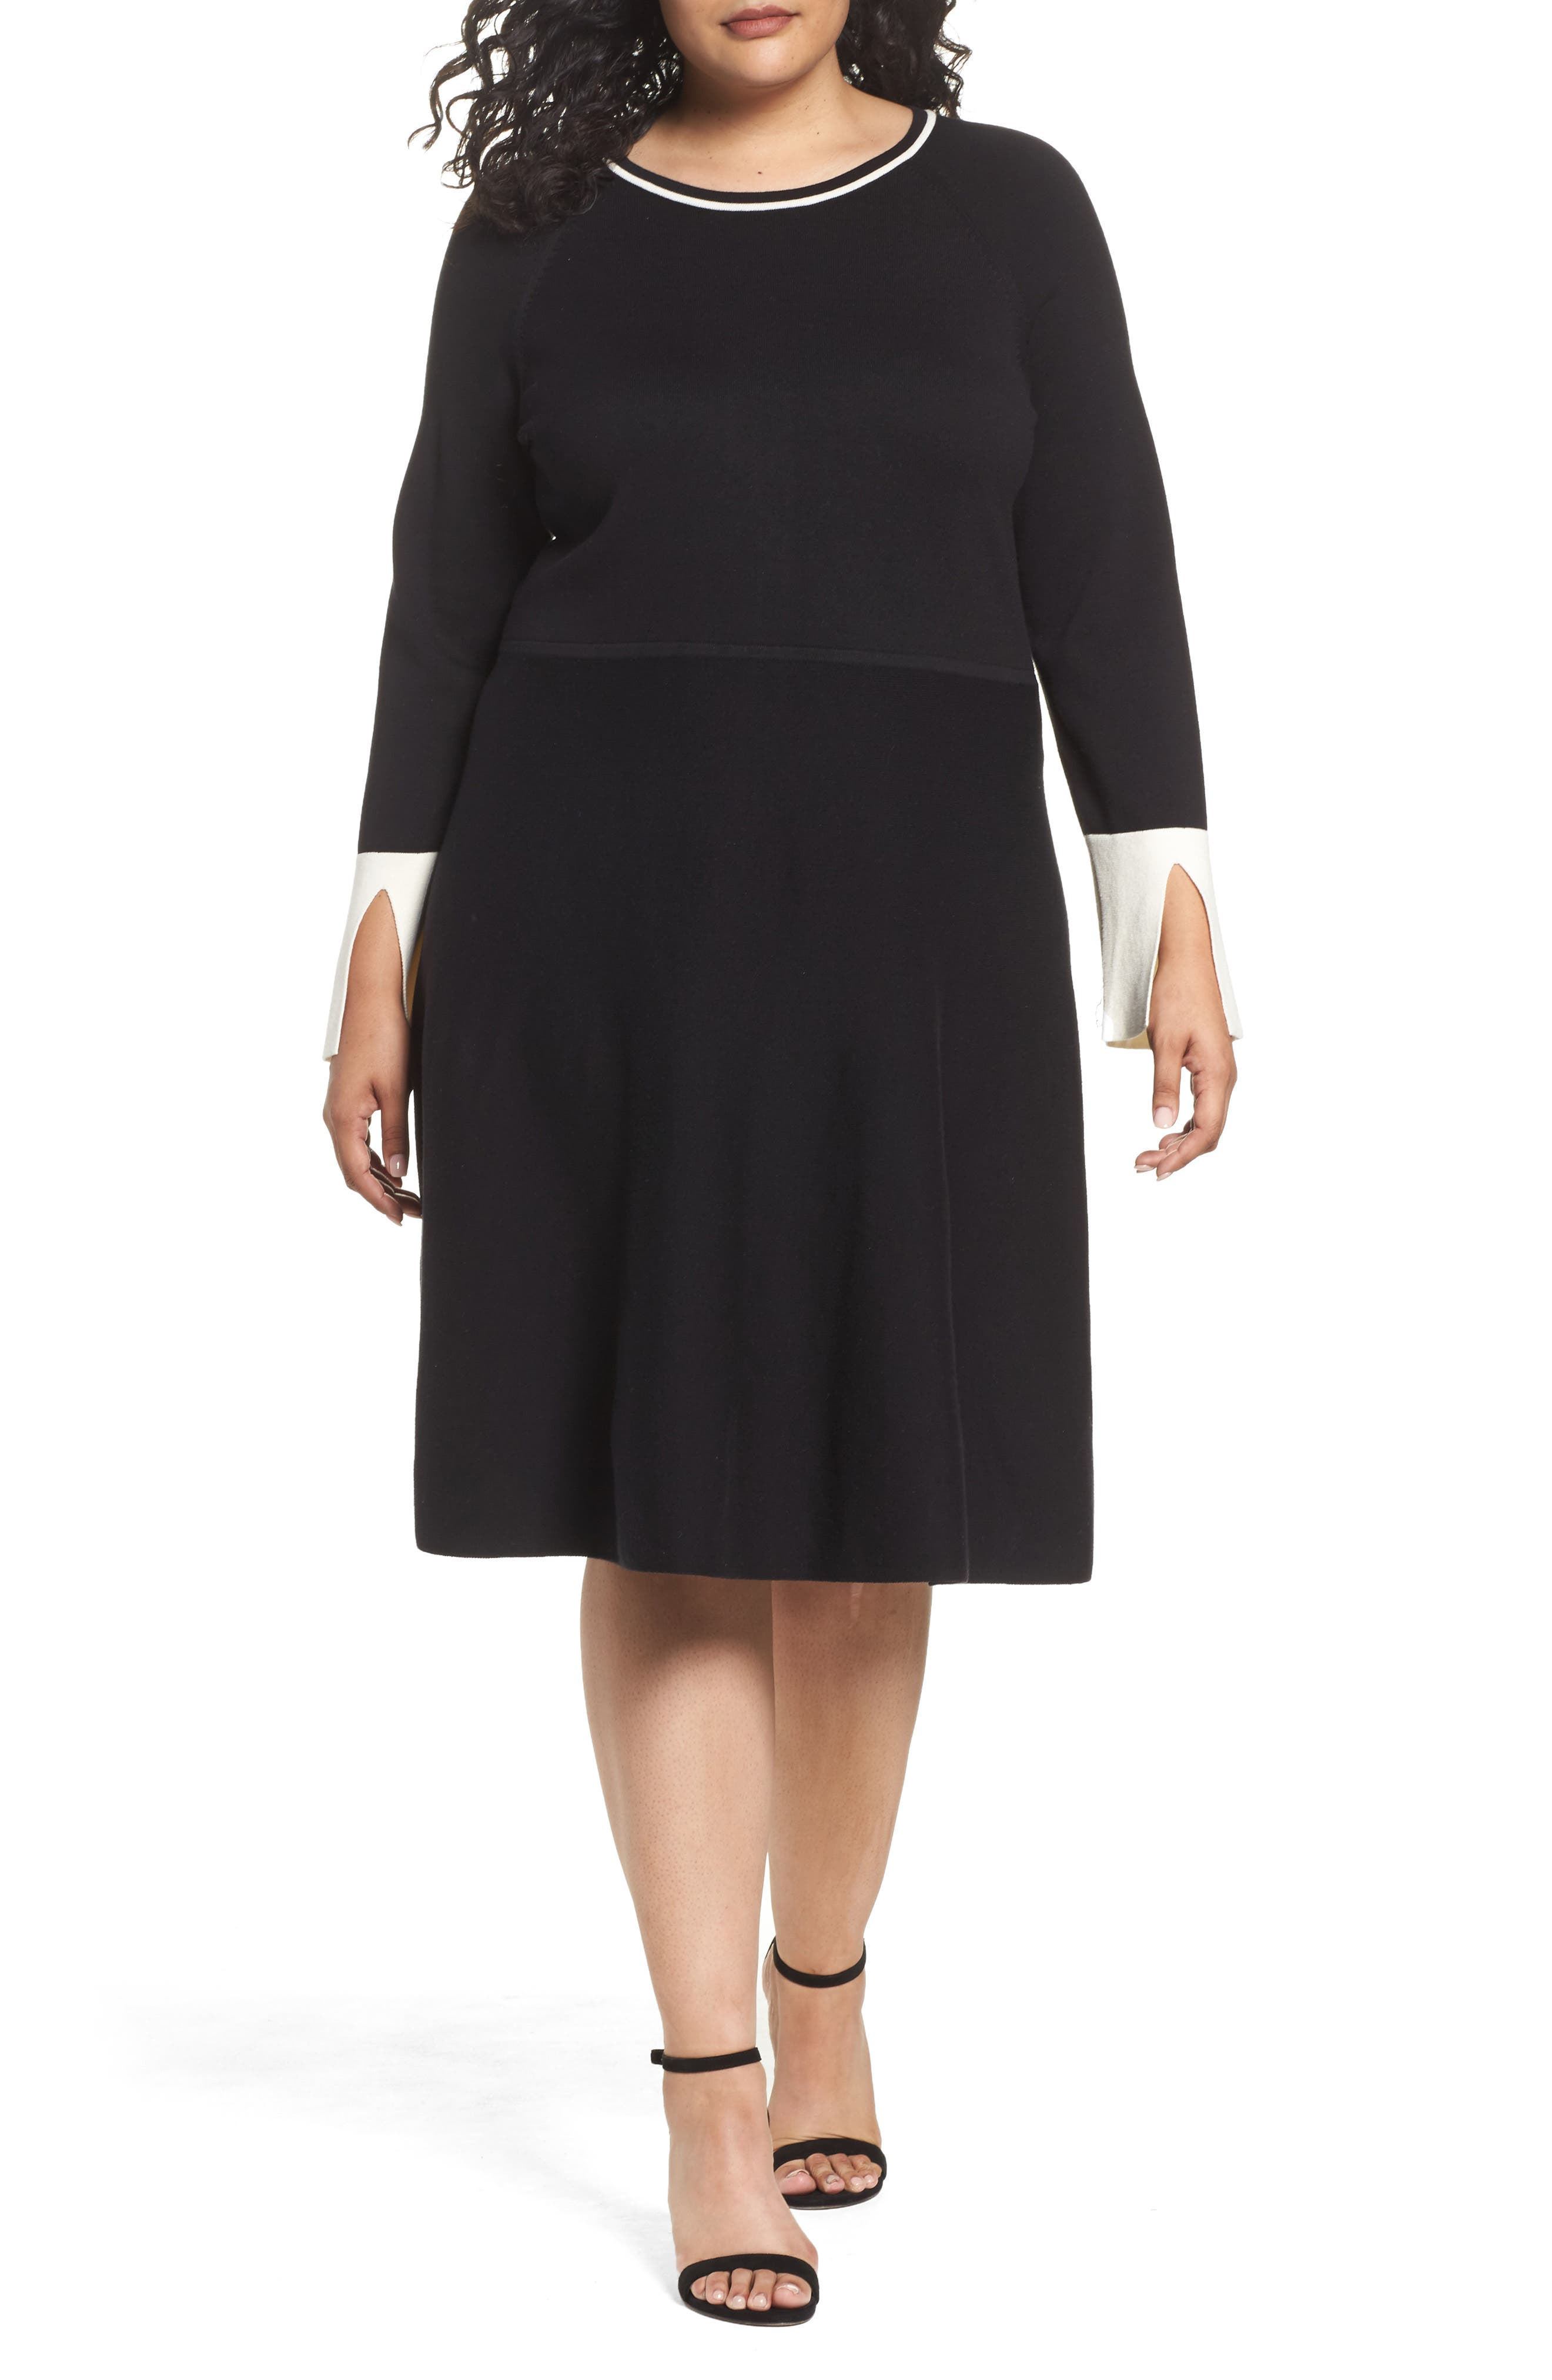 Alternate Image 1 Selected - Vince Camuto Fit & Flare Sweater Dress (Plus Size)